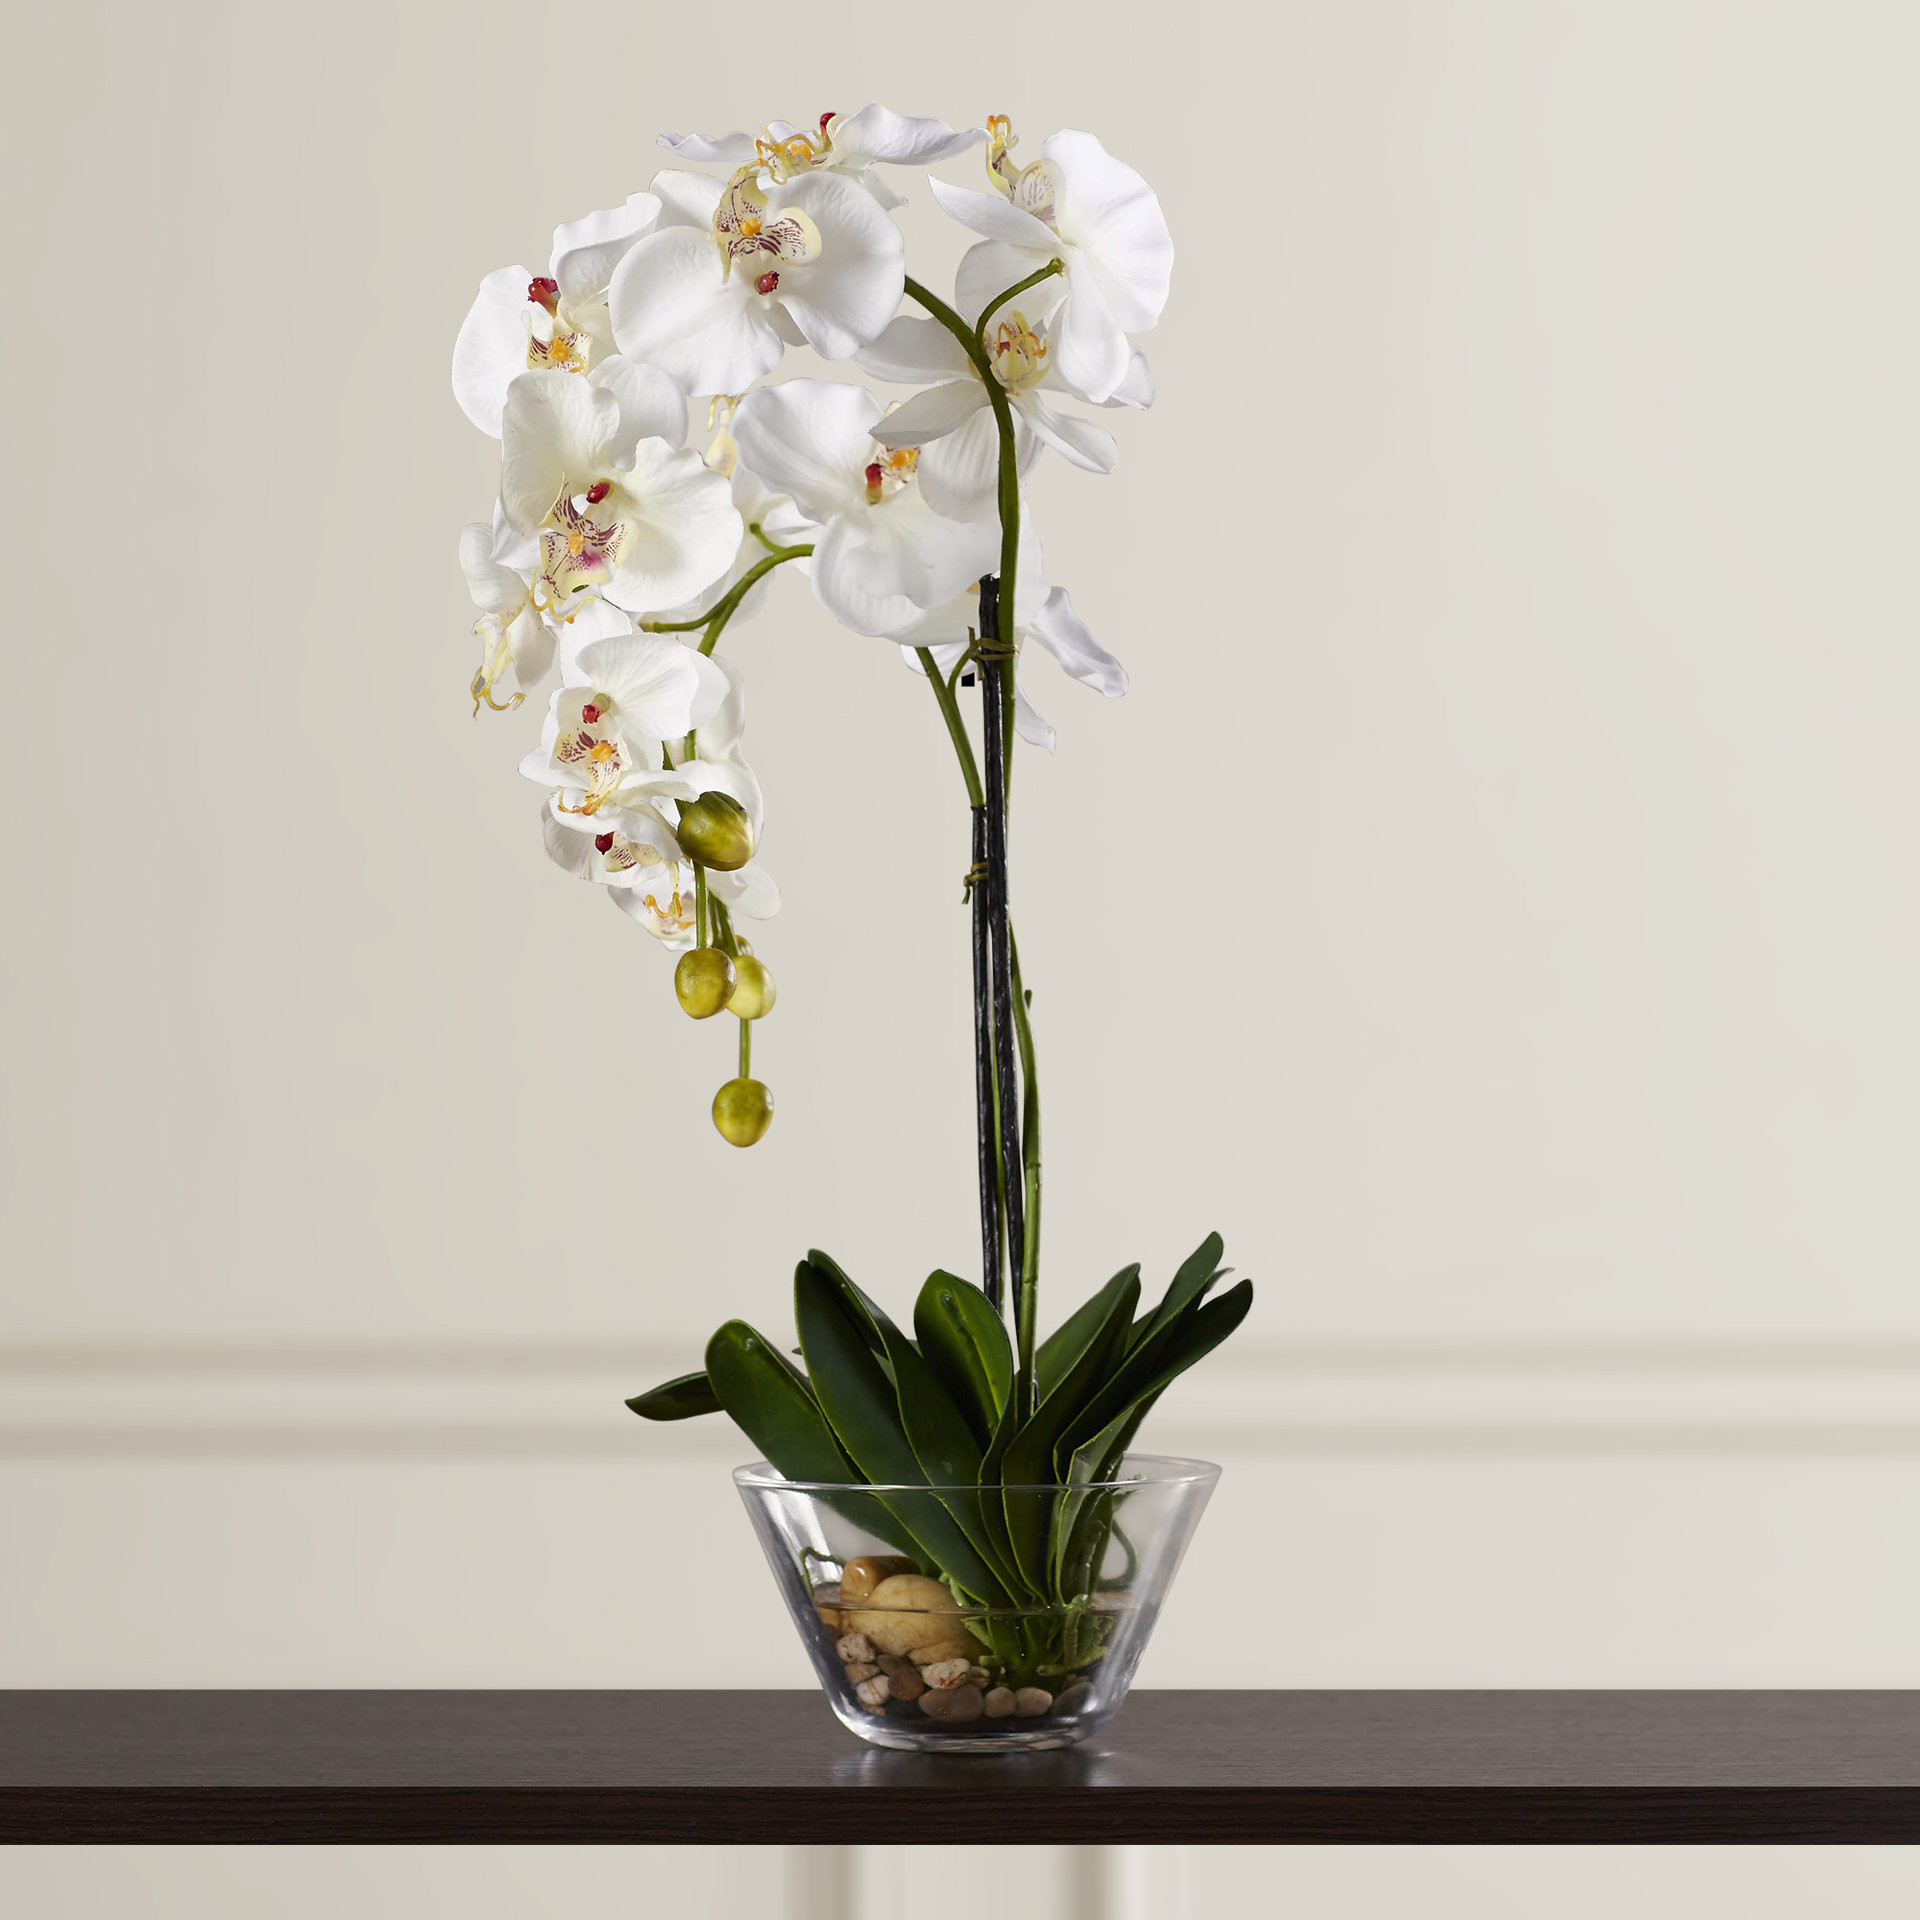 birch tree flower vases of three posts phalaenopsis silk white orchid in glass vase reviews within three posts phalaenopsis silk white orchid in glass vase reviews wayfair